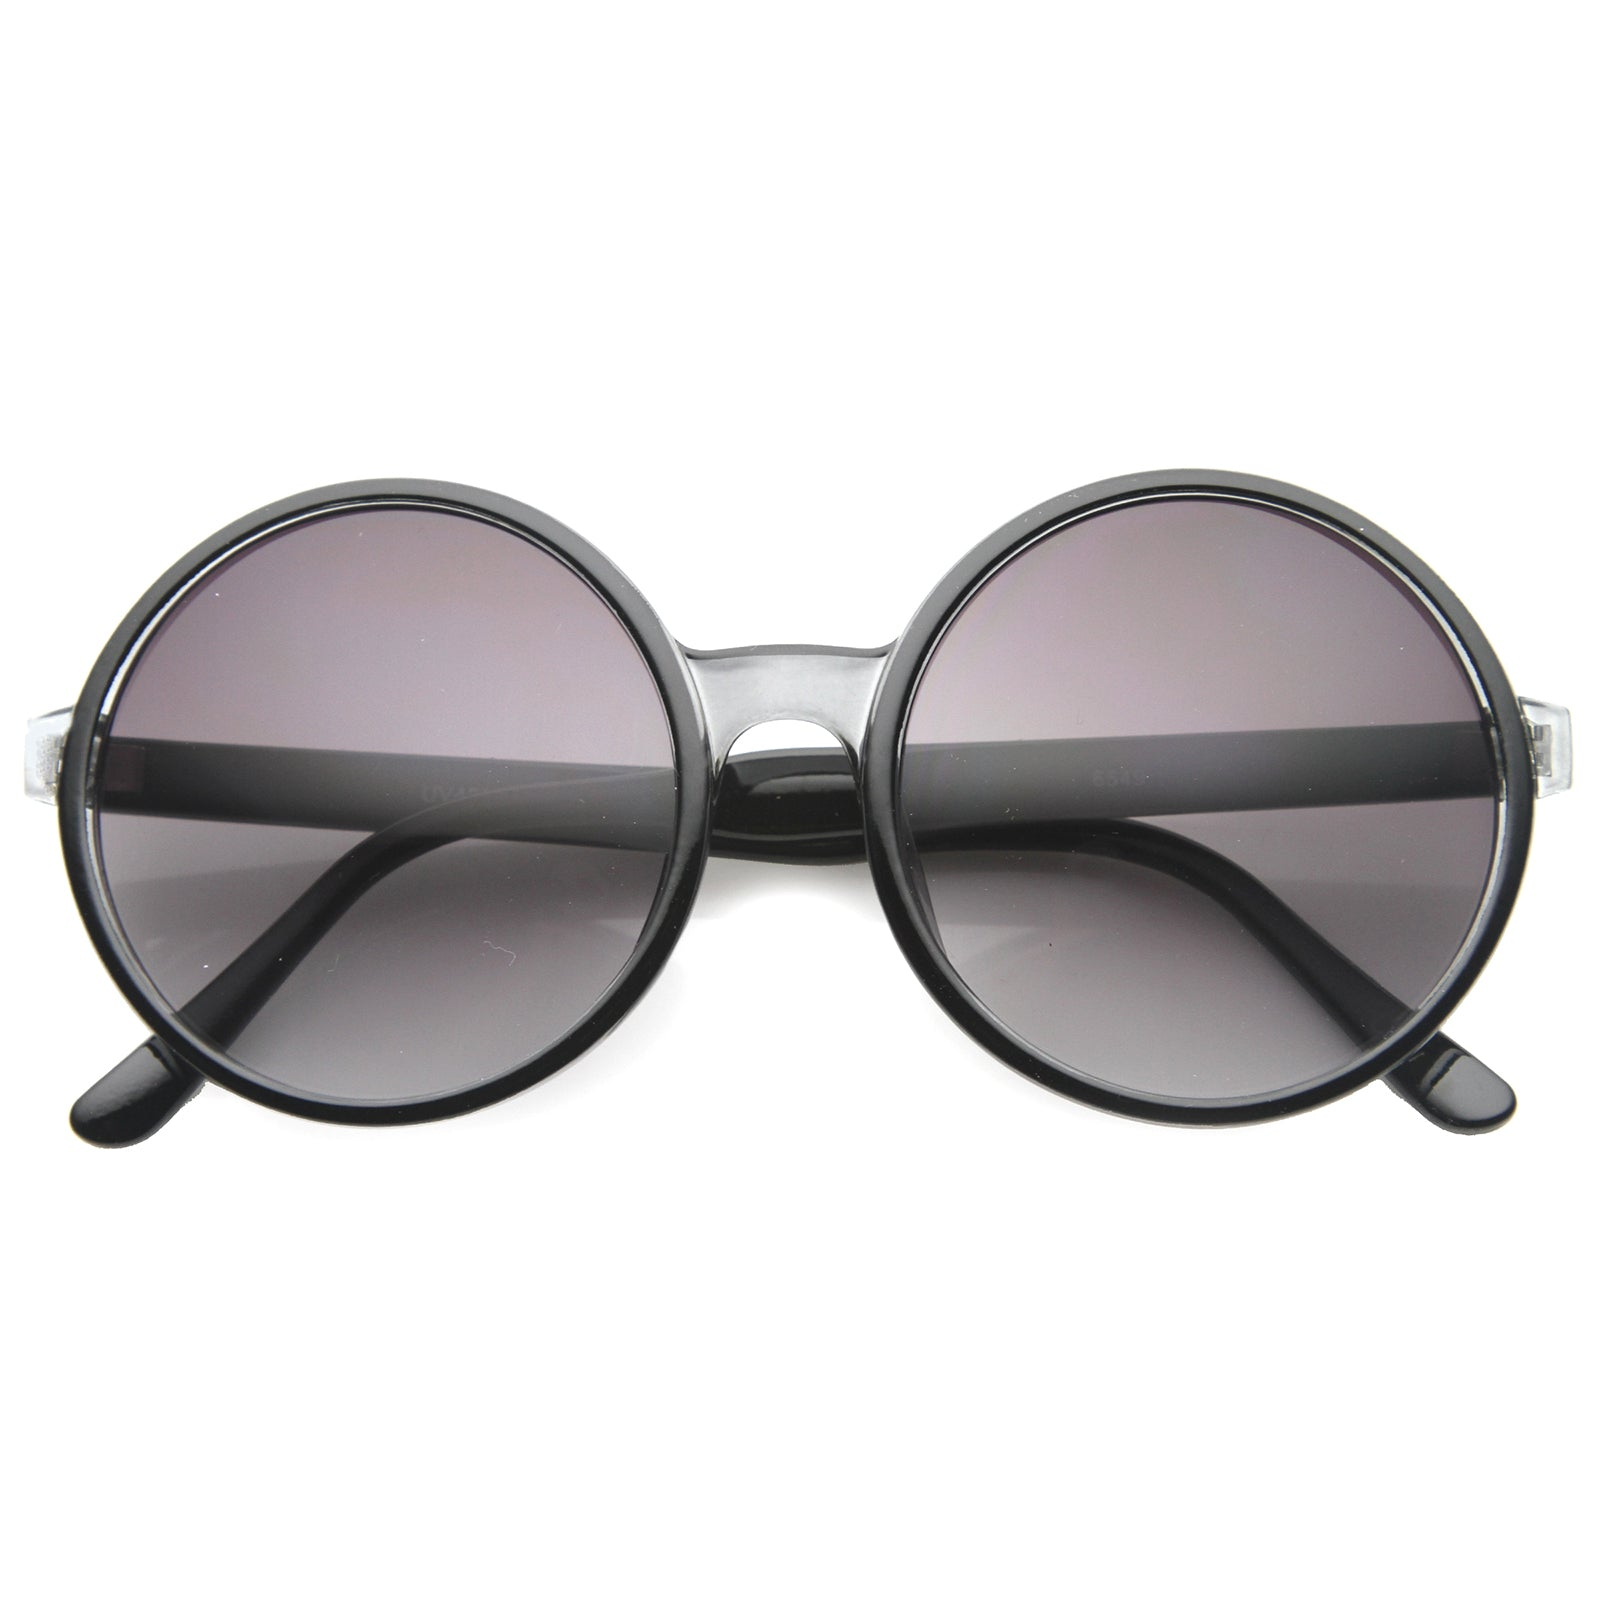 Womens Round Sunglasses With UV400 Protected Gradient Lens - sunglass.la - 1